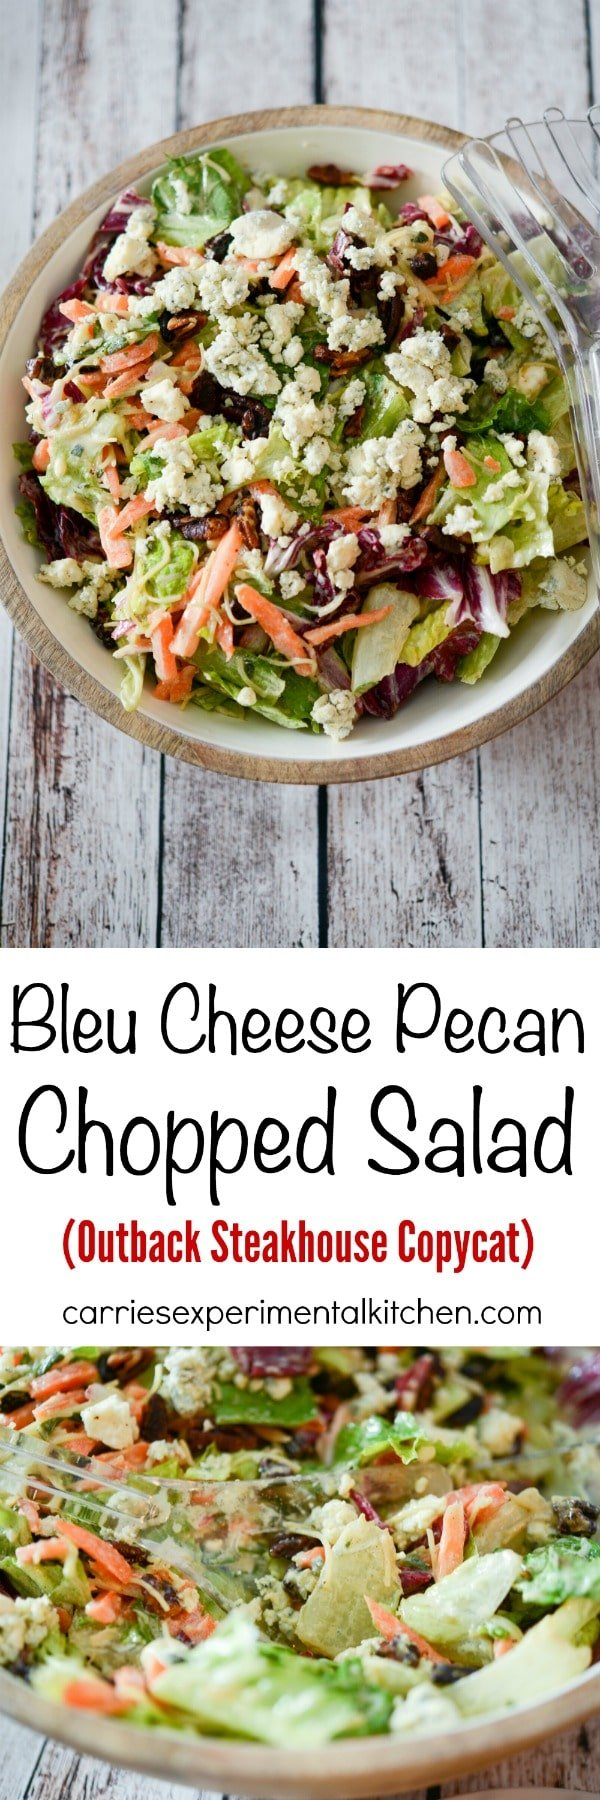 Make Outback Steakhouse's Bleu Cheese Pecan Chopped Salad at home with mixed greens and cinnamon pecans tossed in a Bleu cheese vinaigrette; then topped with crumbled Blue Cheese.  #salad #bleucheese #pecan #outbacksteakhouse #copycatrecipe